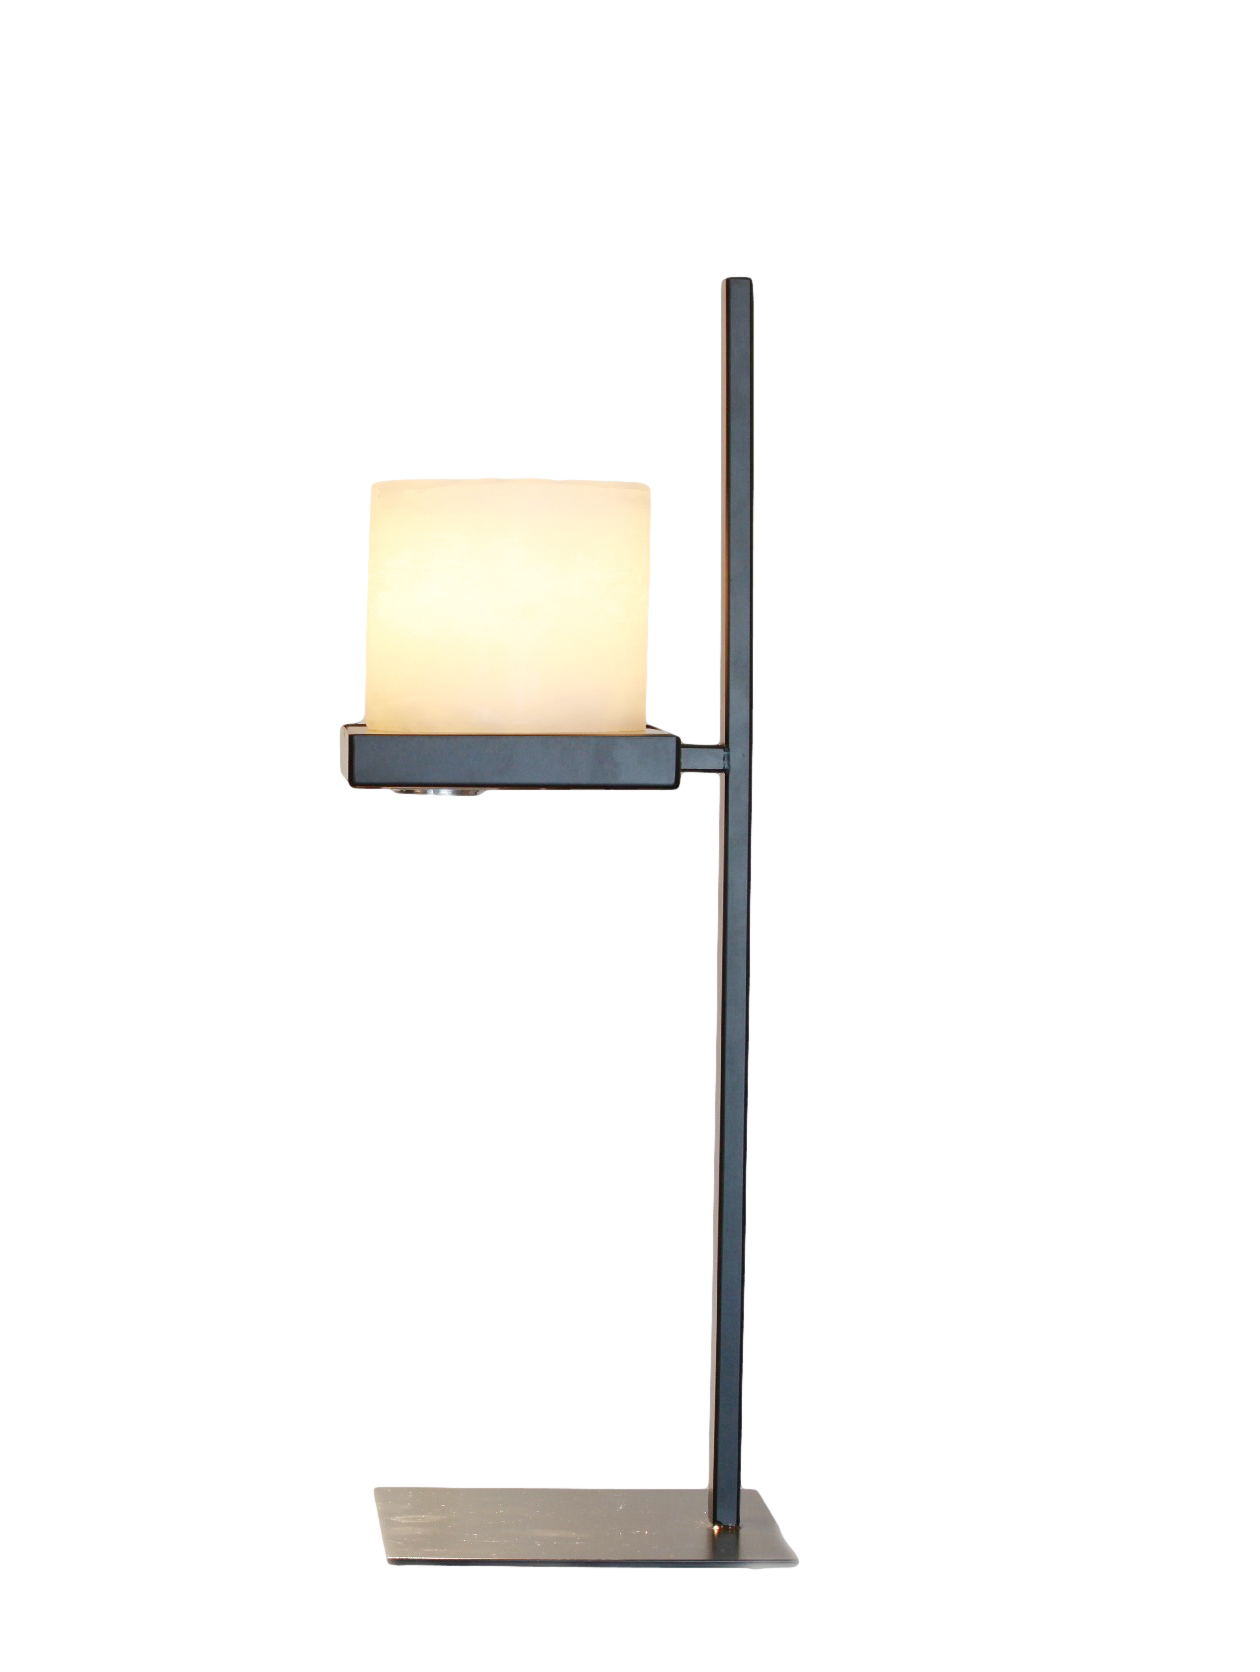 Stout Verlichting Collectie Sfeerfoto Tafellamp LED candle